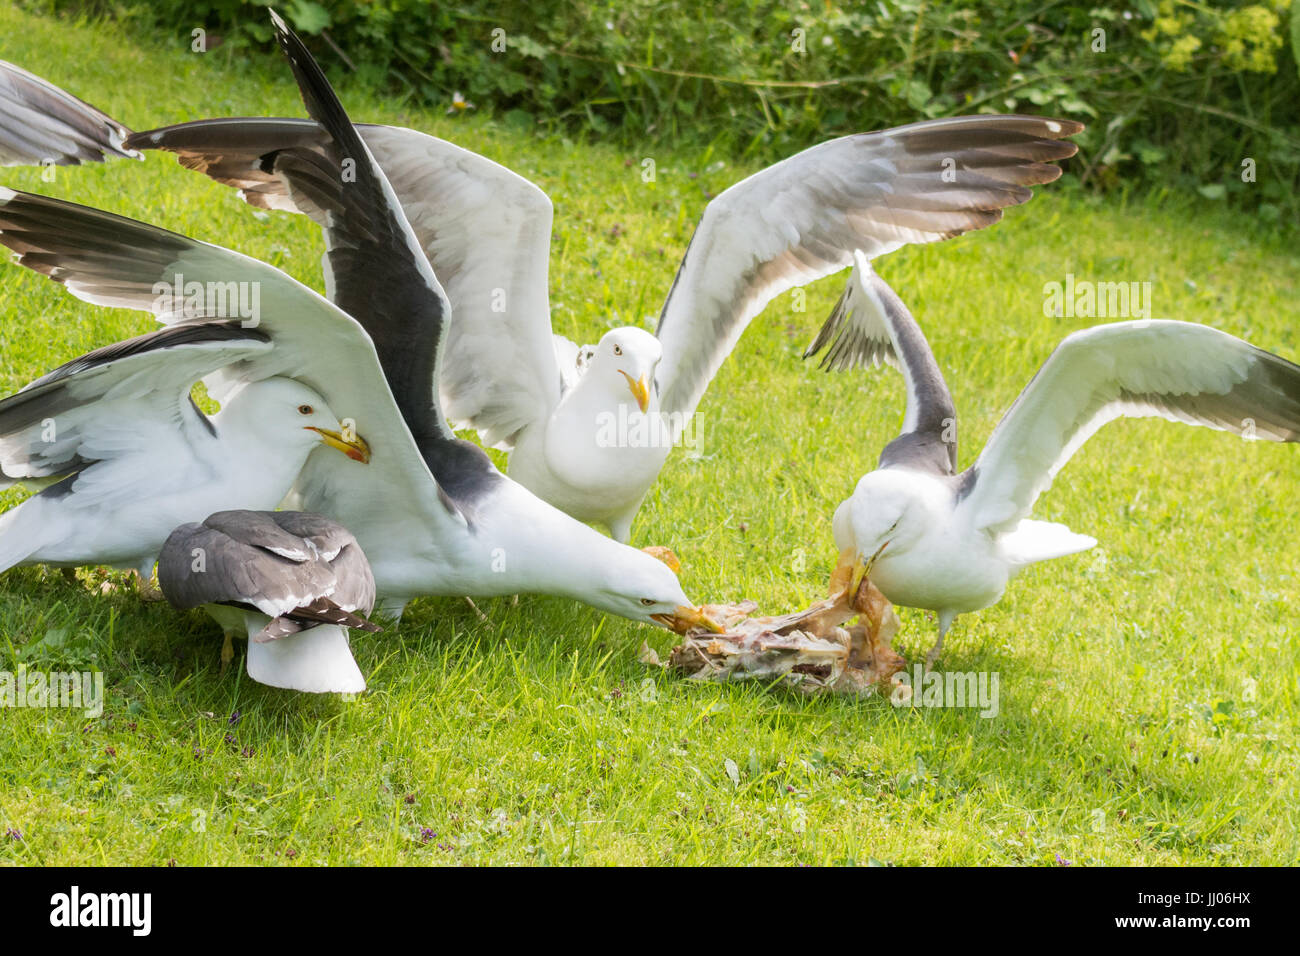 gulls in garden squabbling over cooked chicken carcass - Stock Image